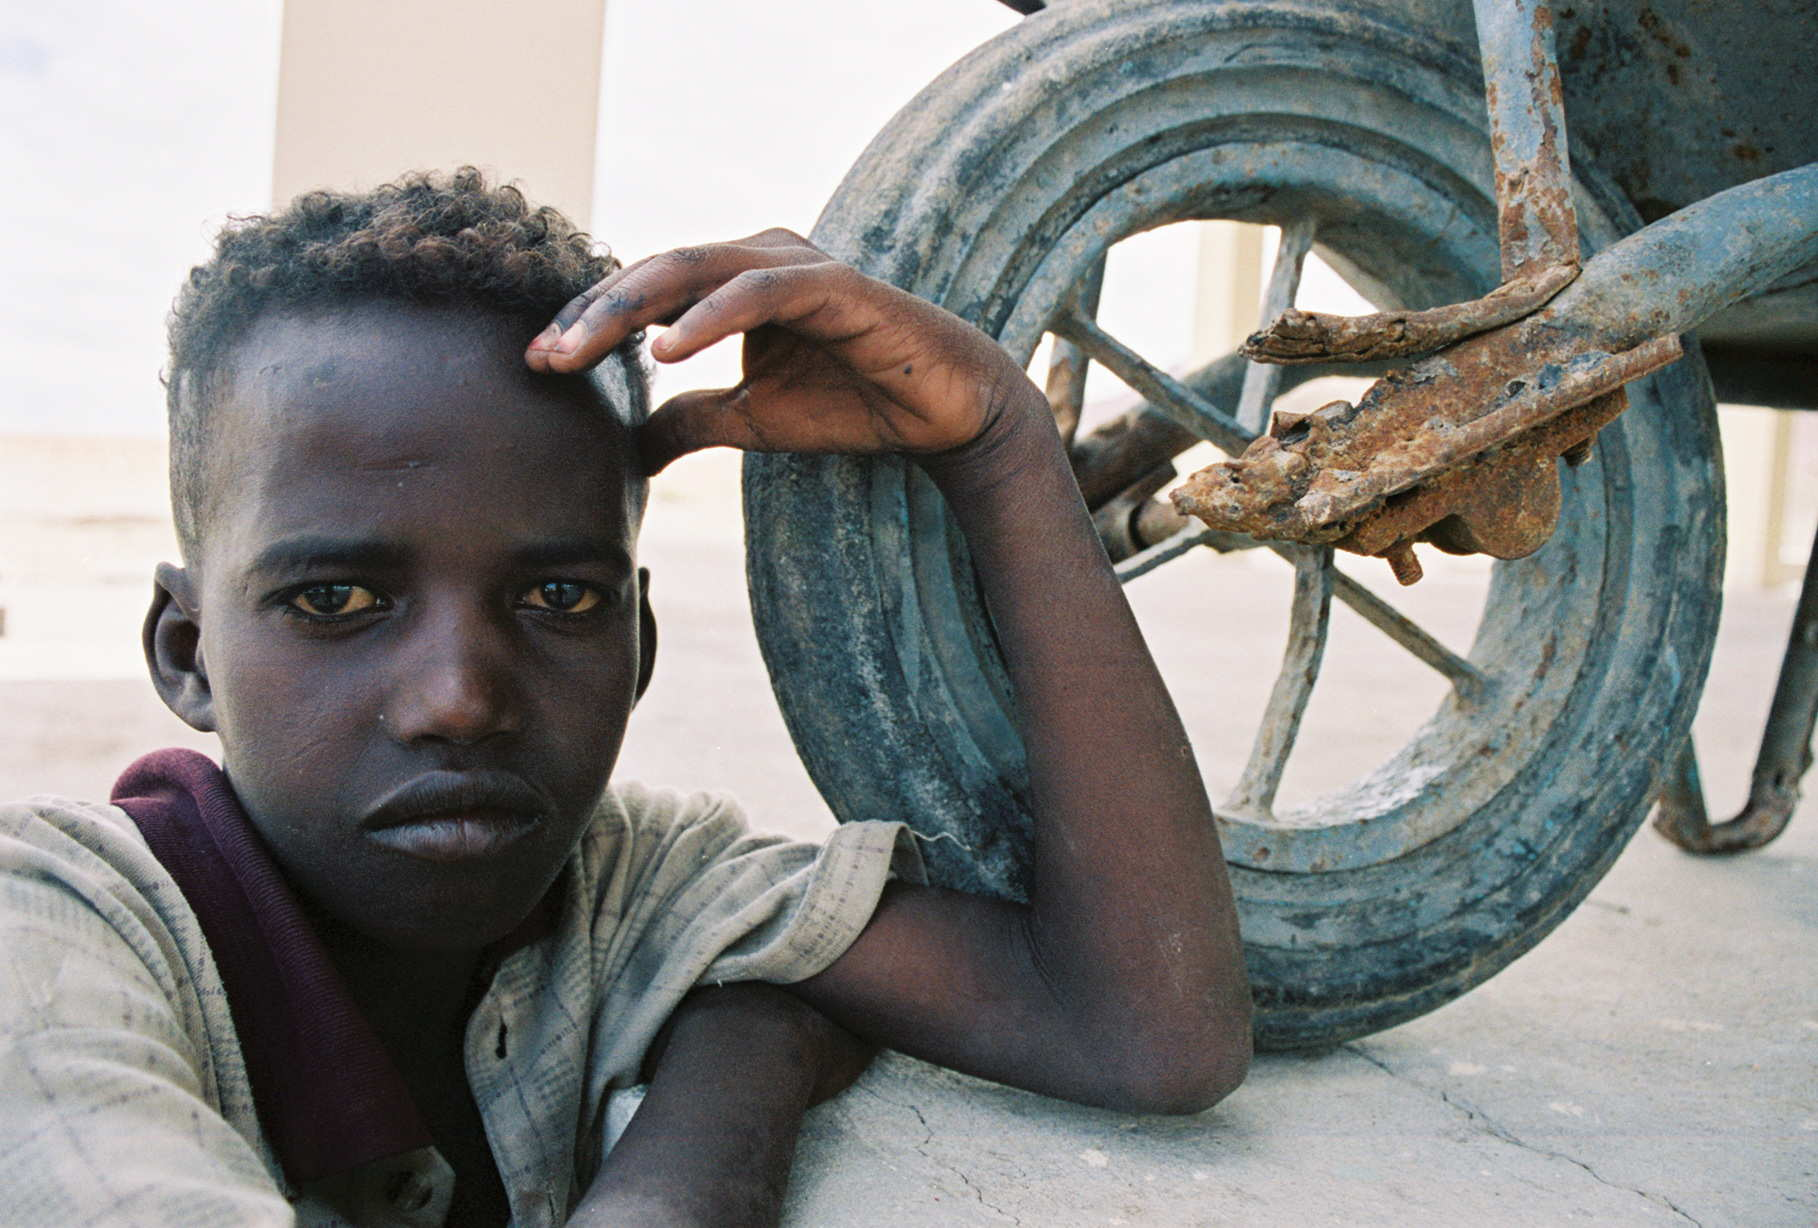 Ethiopian Border Boy and Wheel (2).jpg